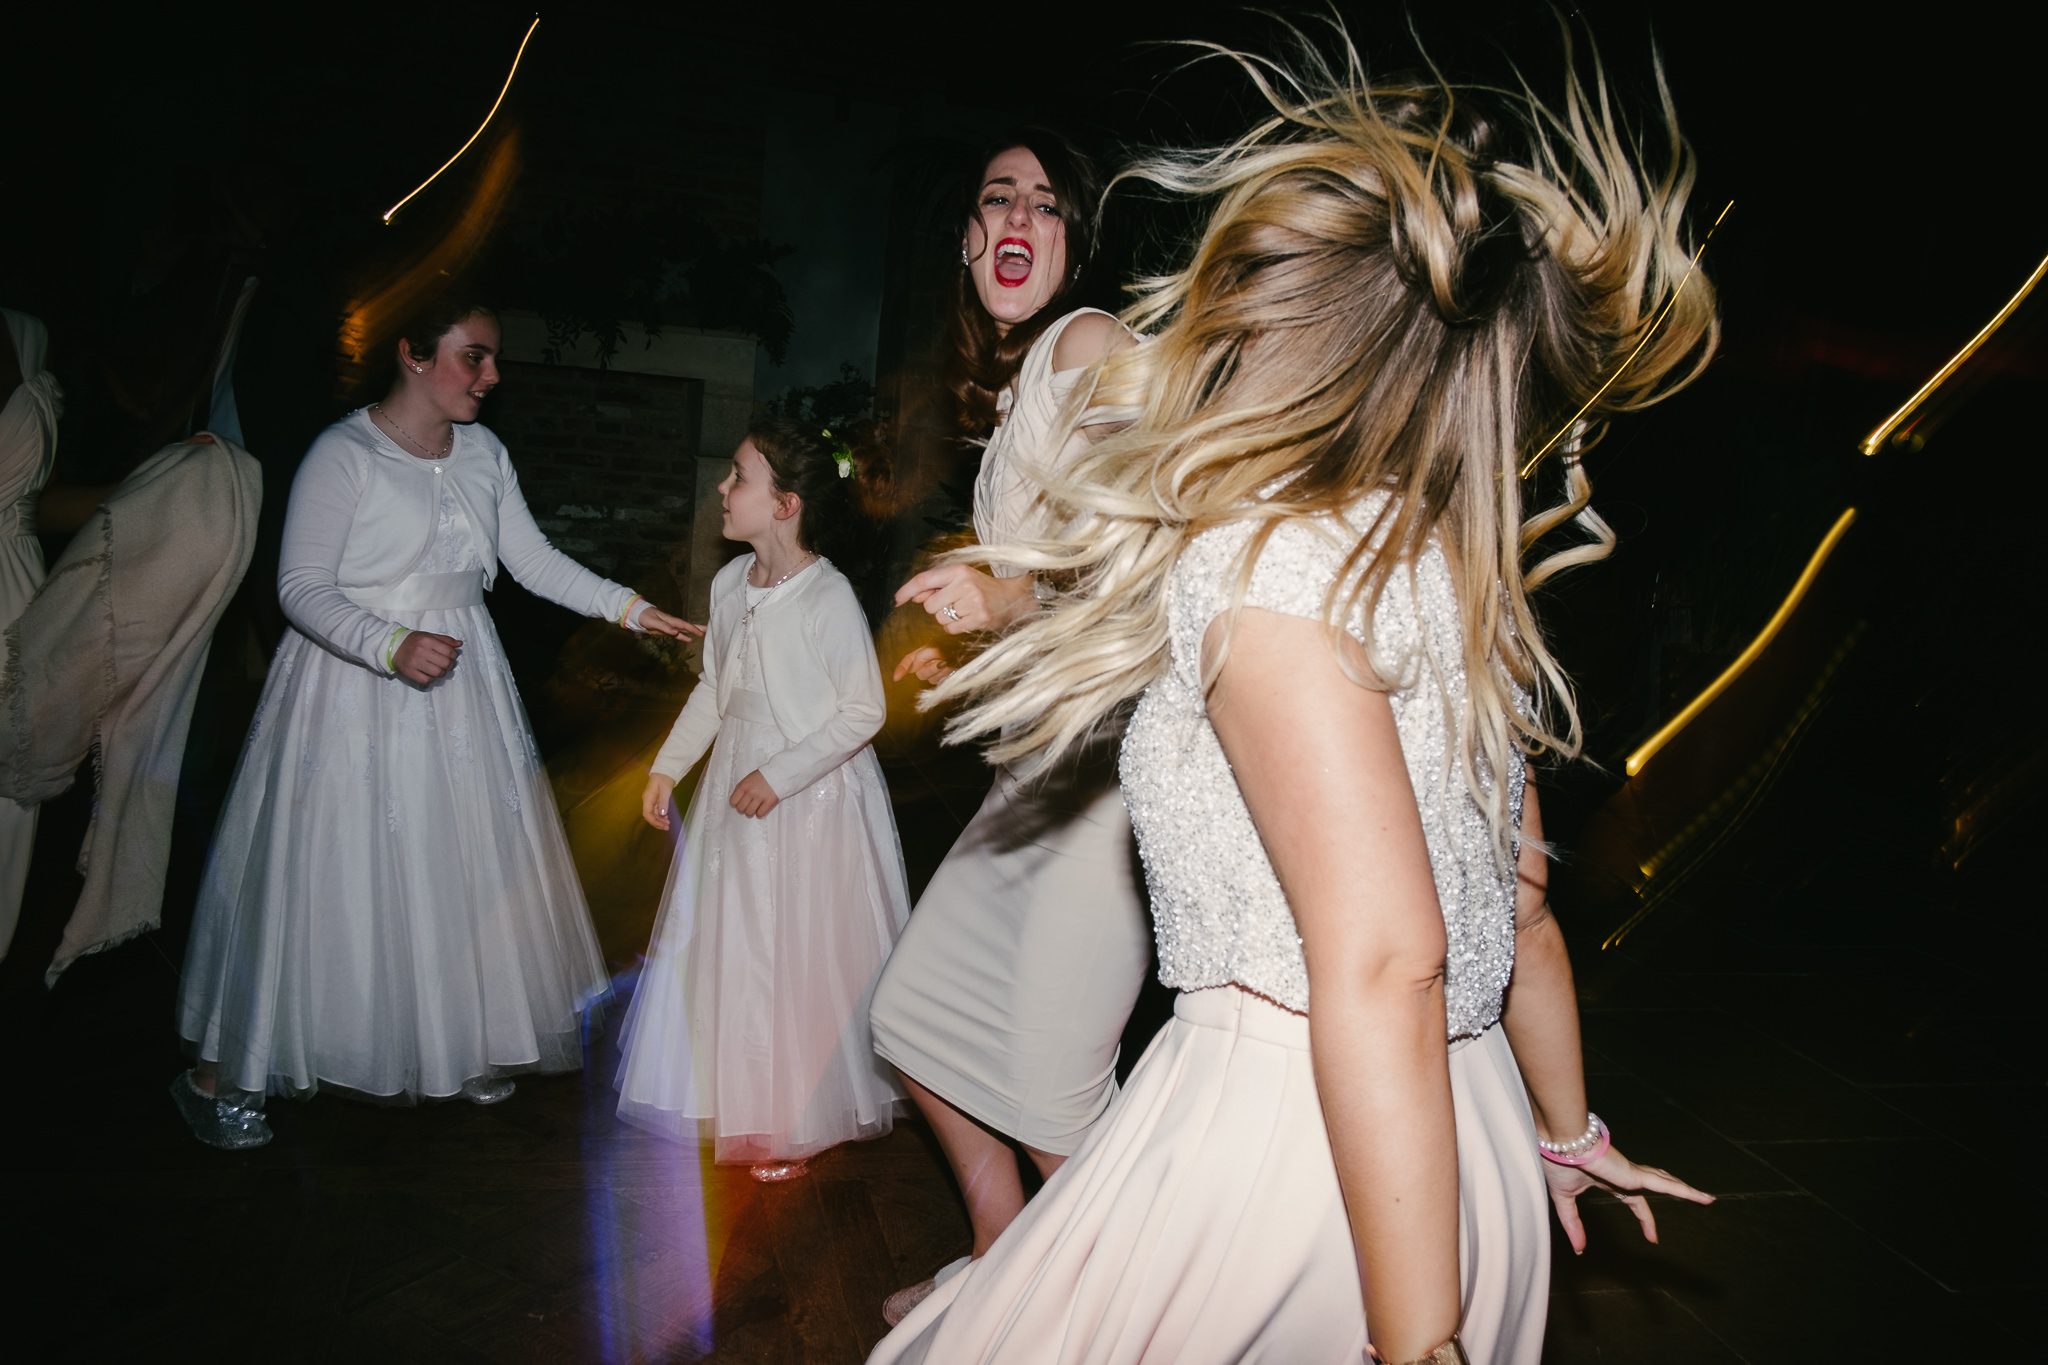 Bridesmaids go crazy on the dance floor with hair flying everywhere